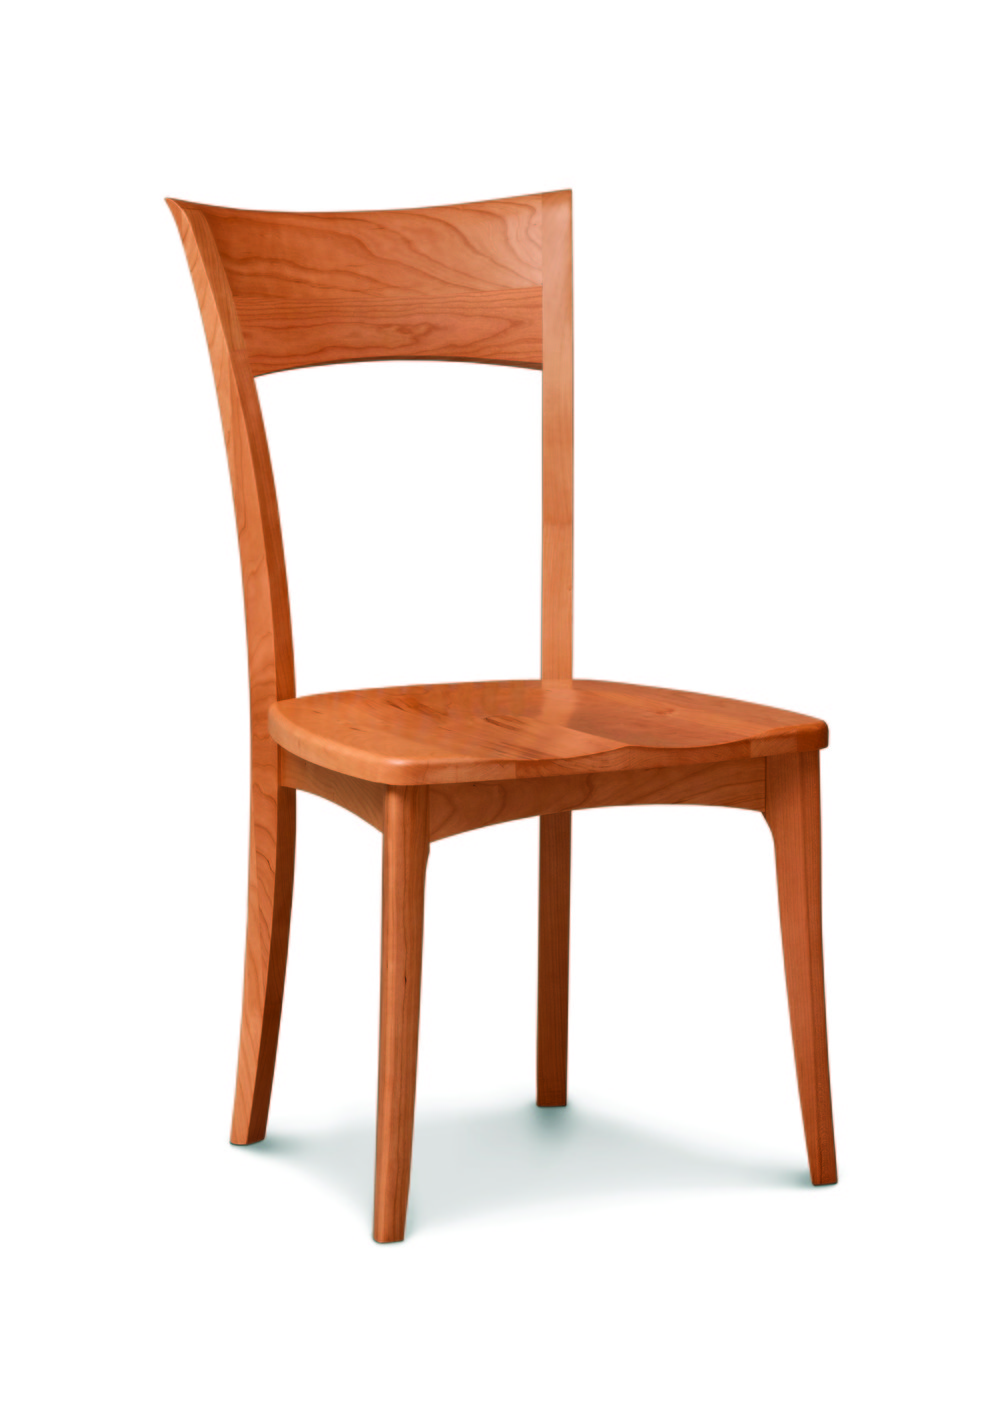 Copeland Furniture - Ingrid Side Chair with Wood Seat